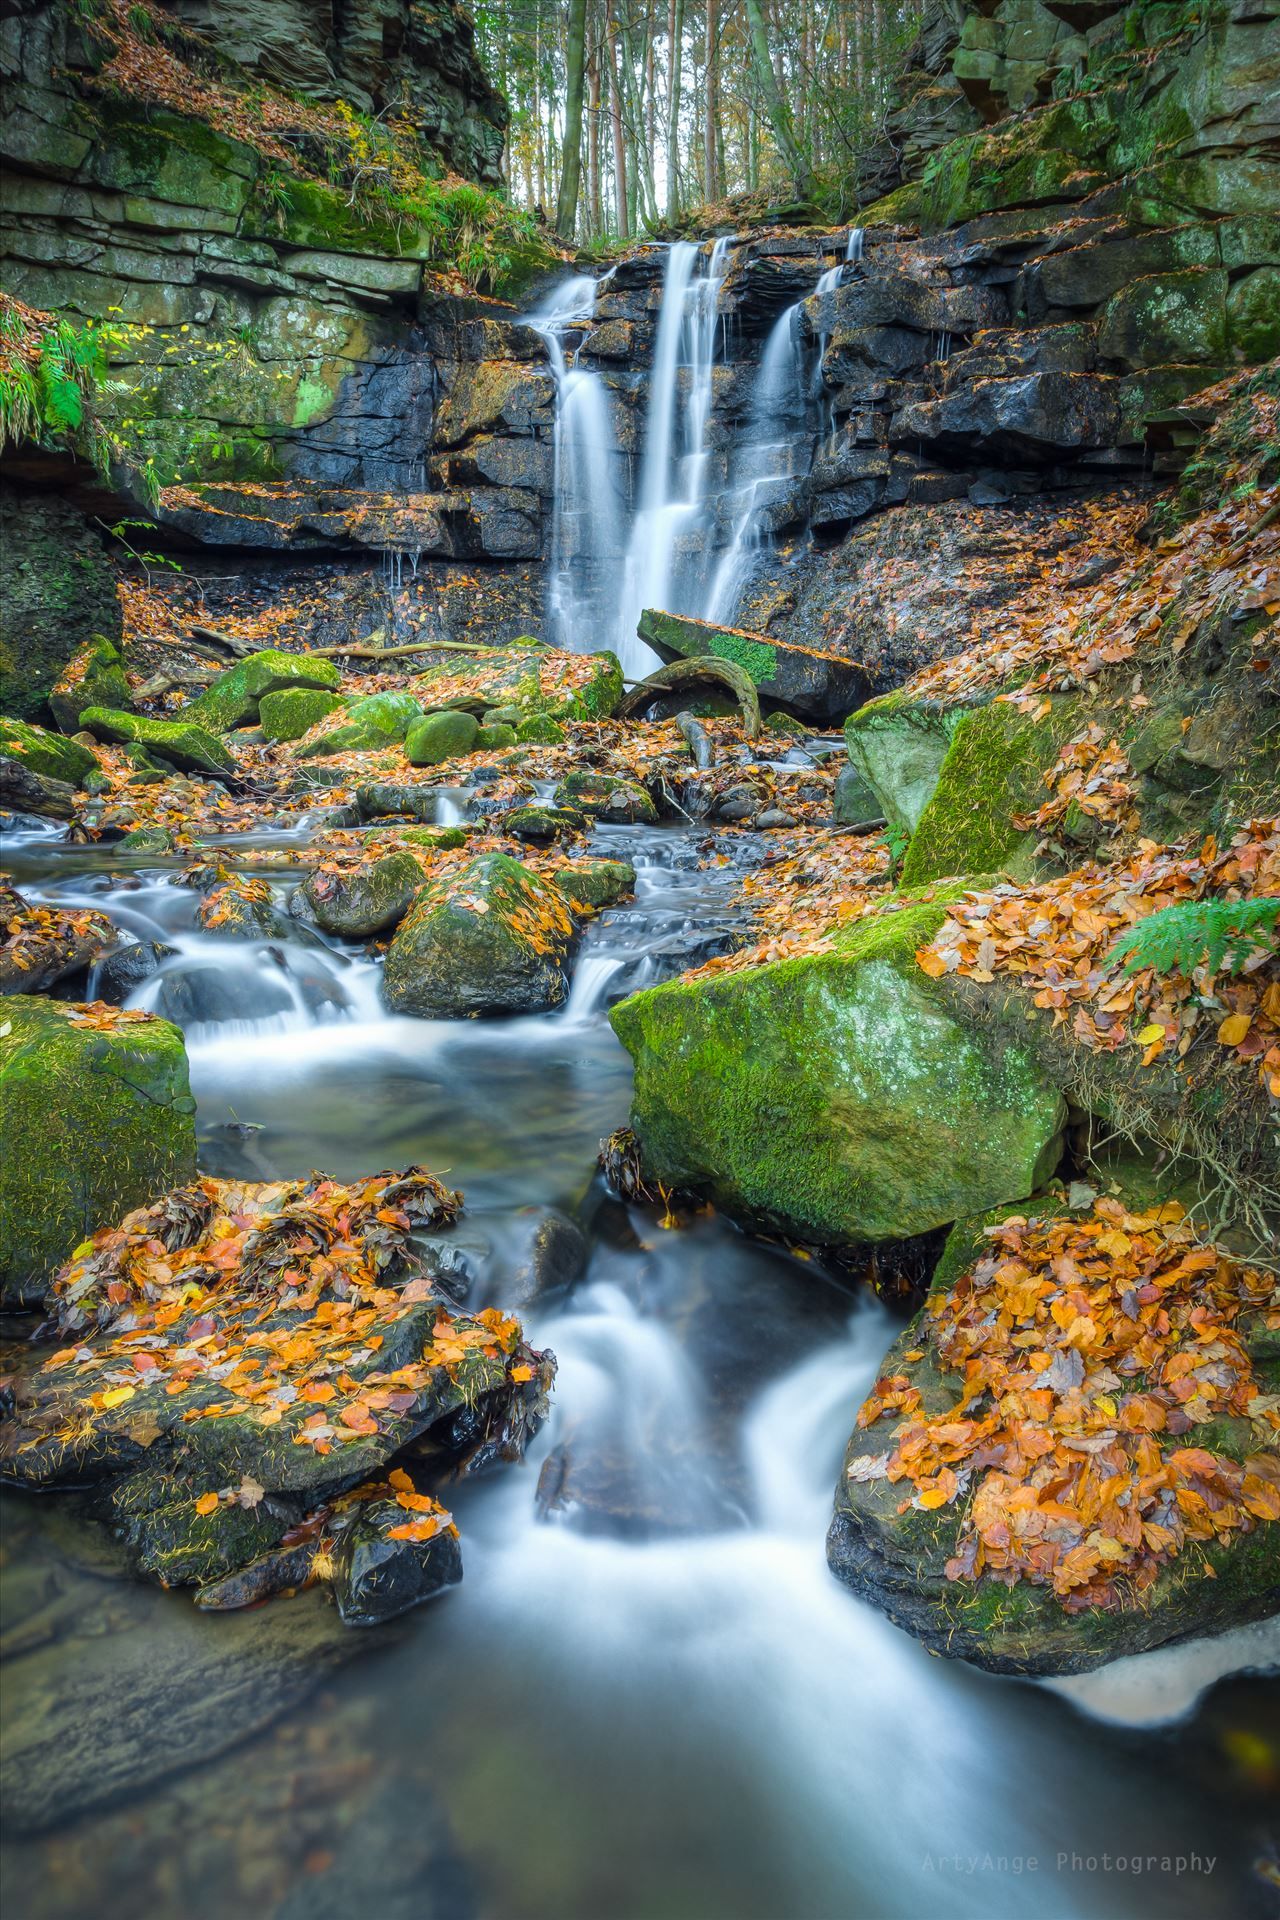 Autumnal Wharnley Burn Waterfall - Wharnley Burn waterfall near Allensford in County Durham by ArtyAnge Photography